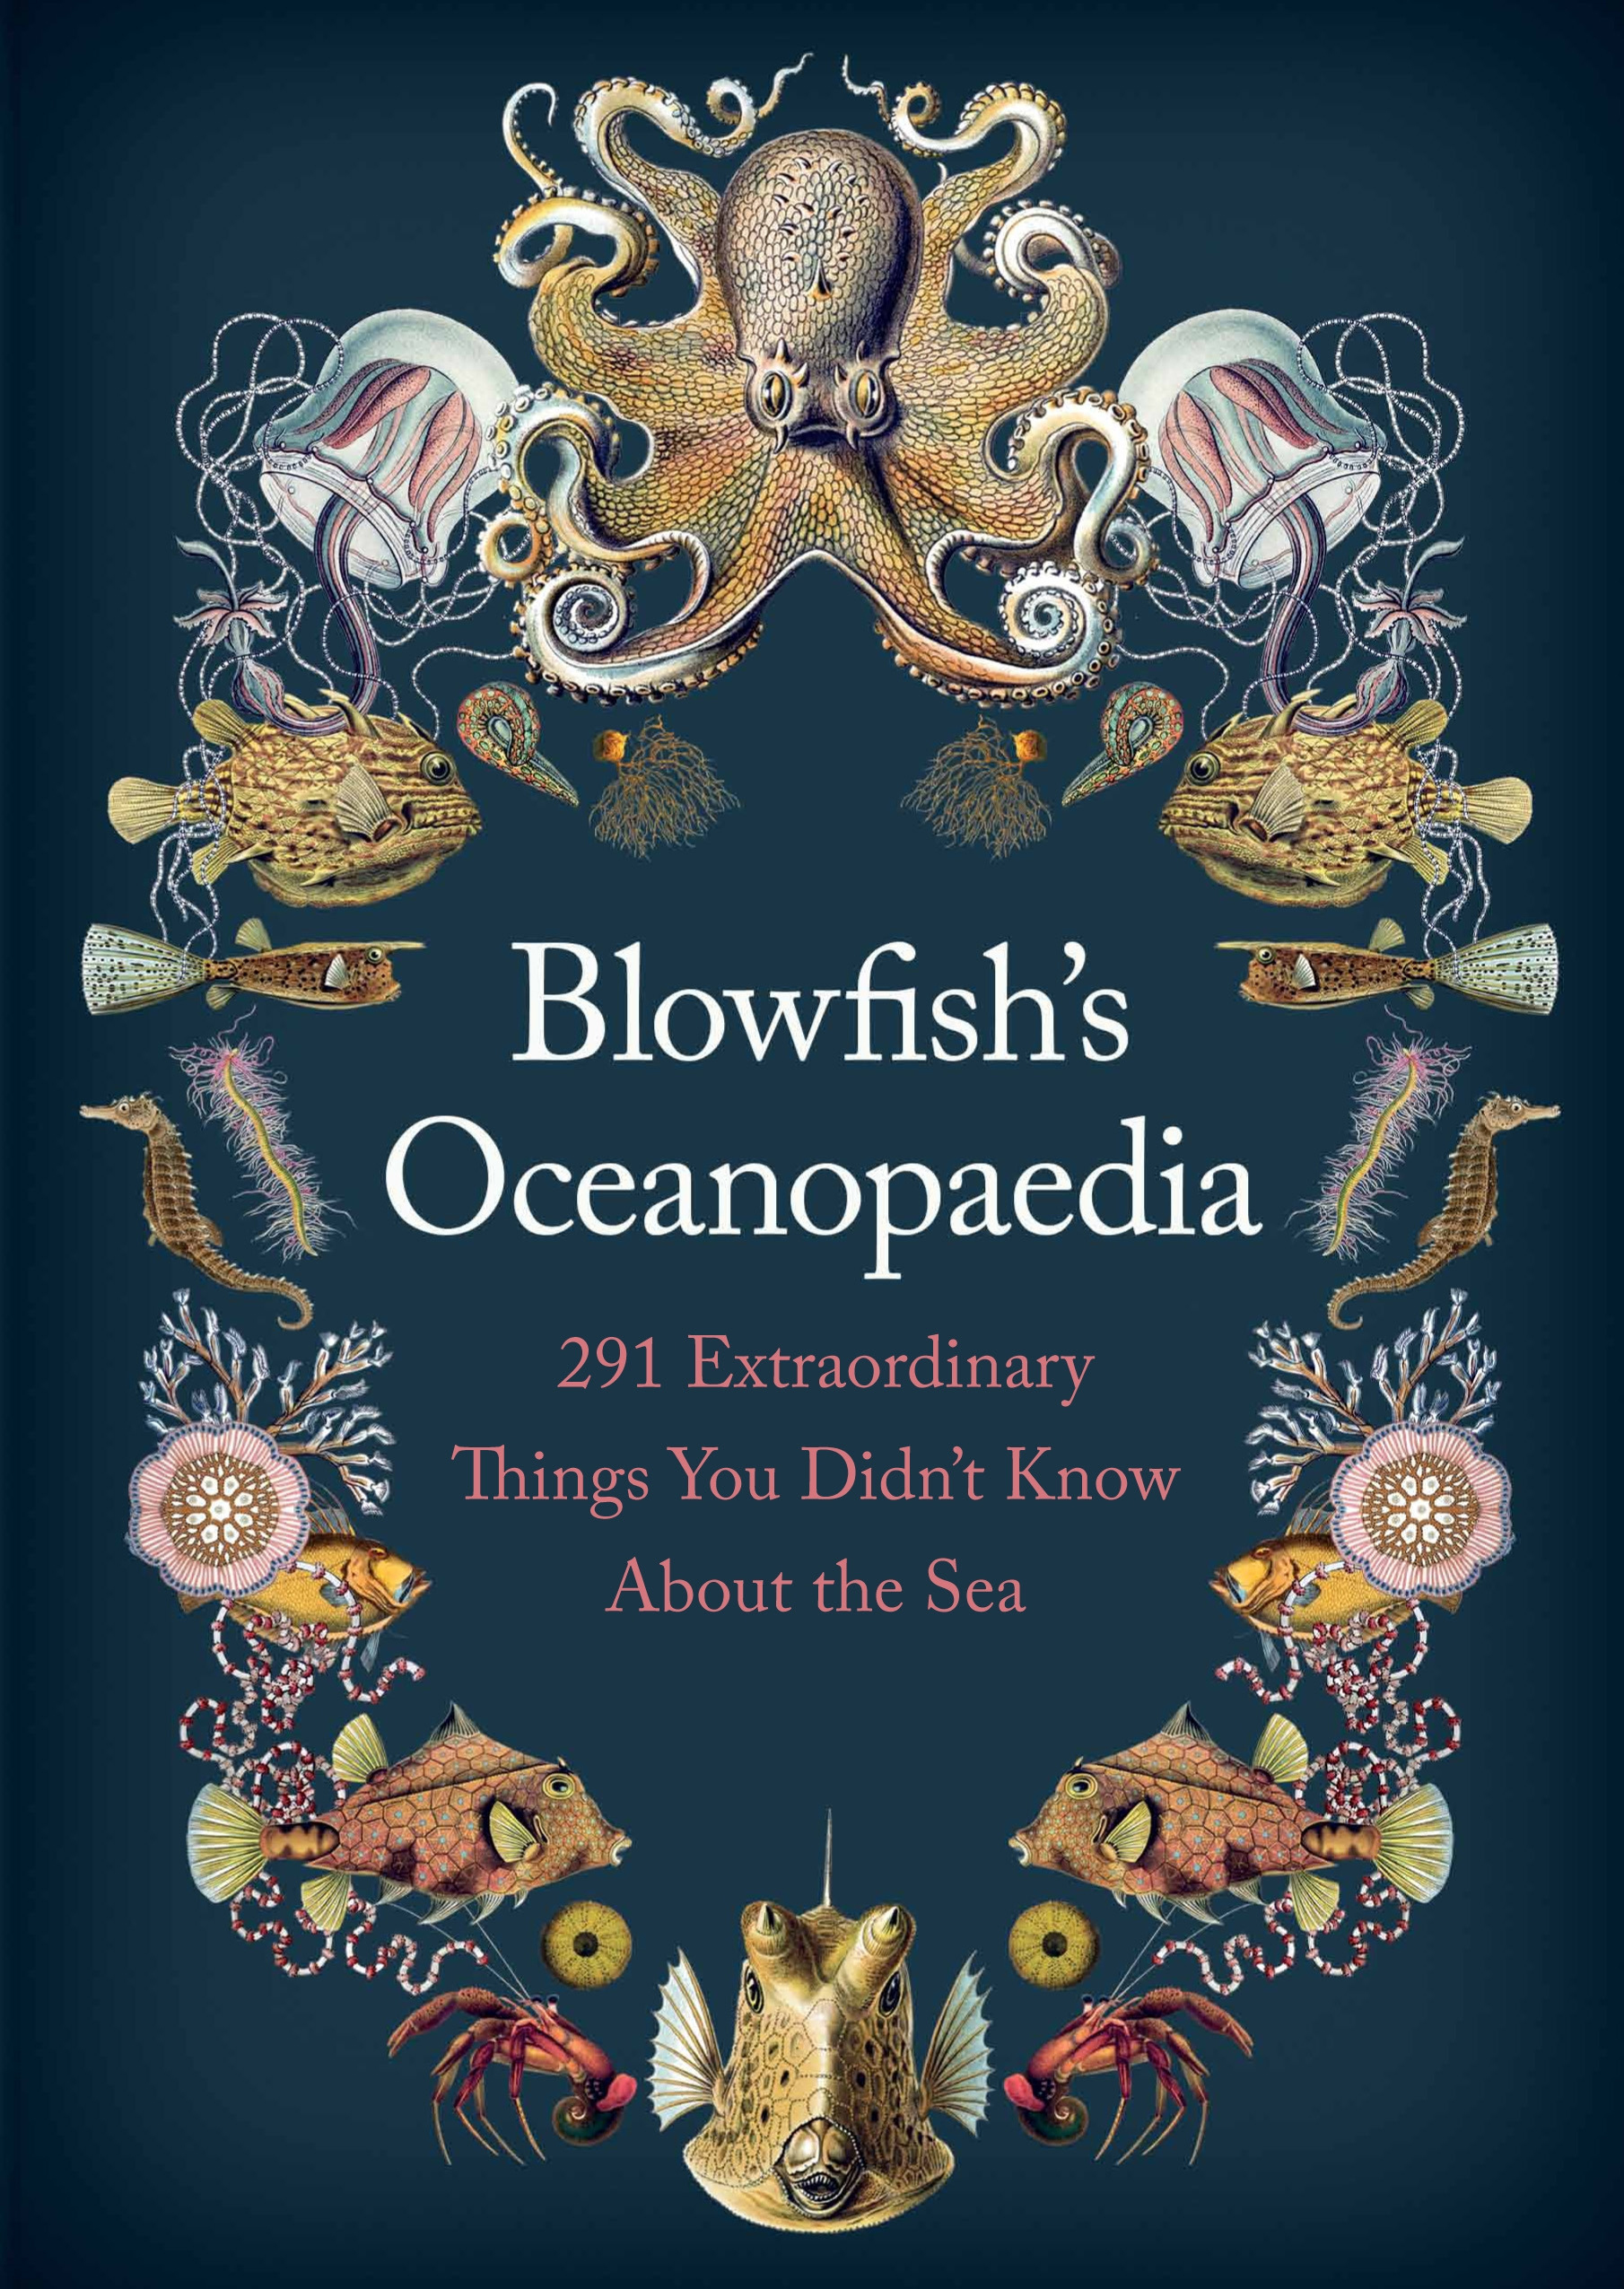 Blowfish's Oceanopedia 291 Extraordinary Things You Didn't Know About the Sea